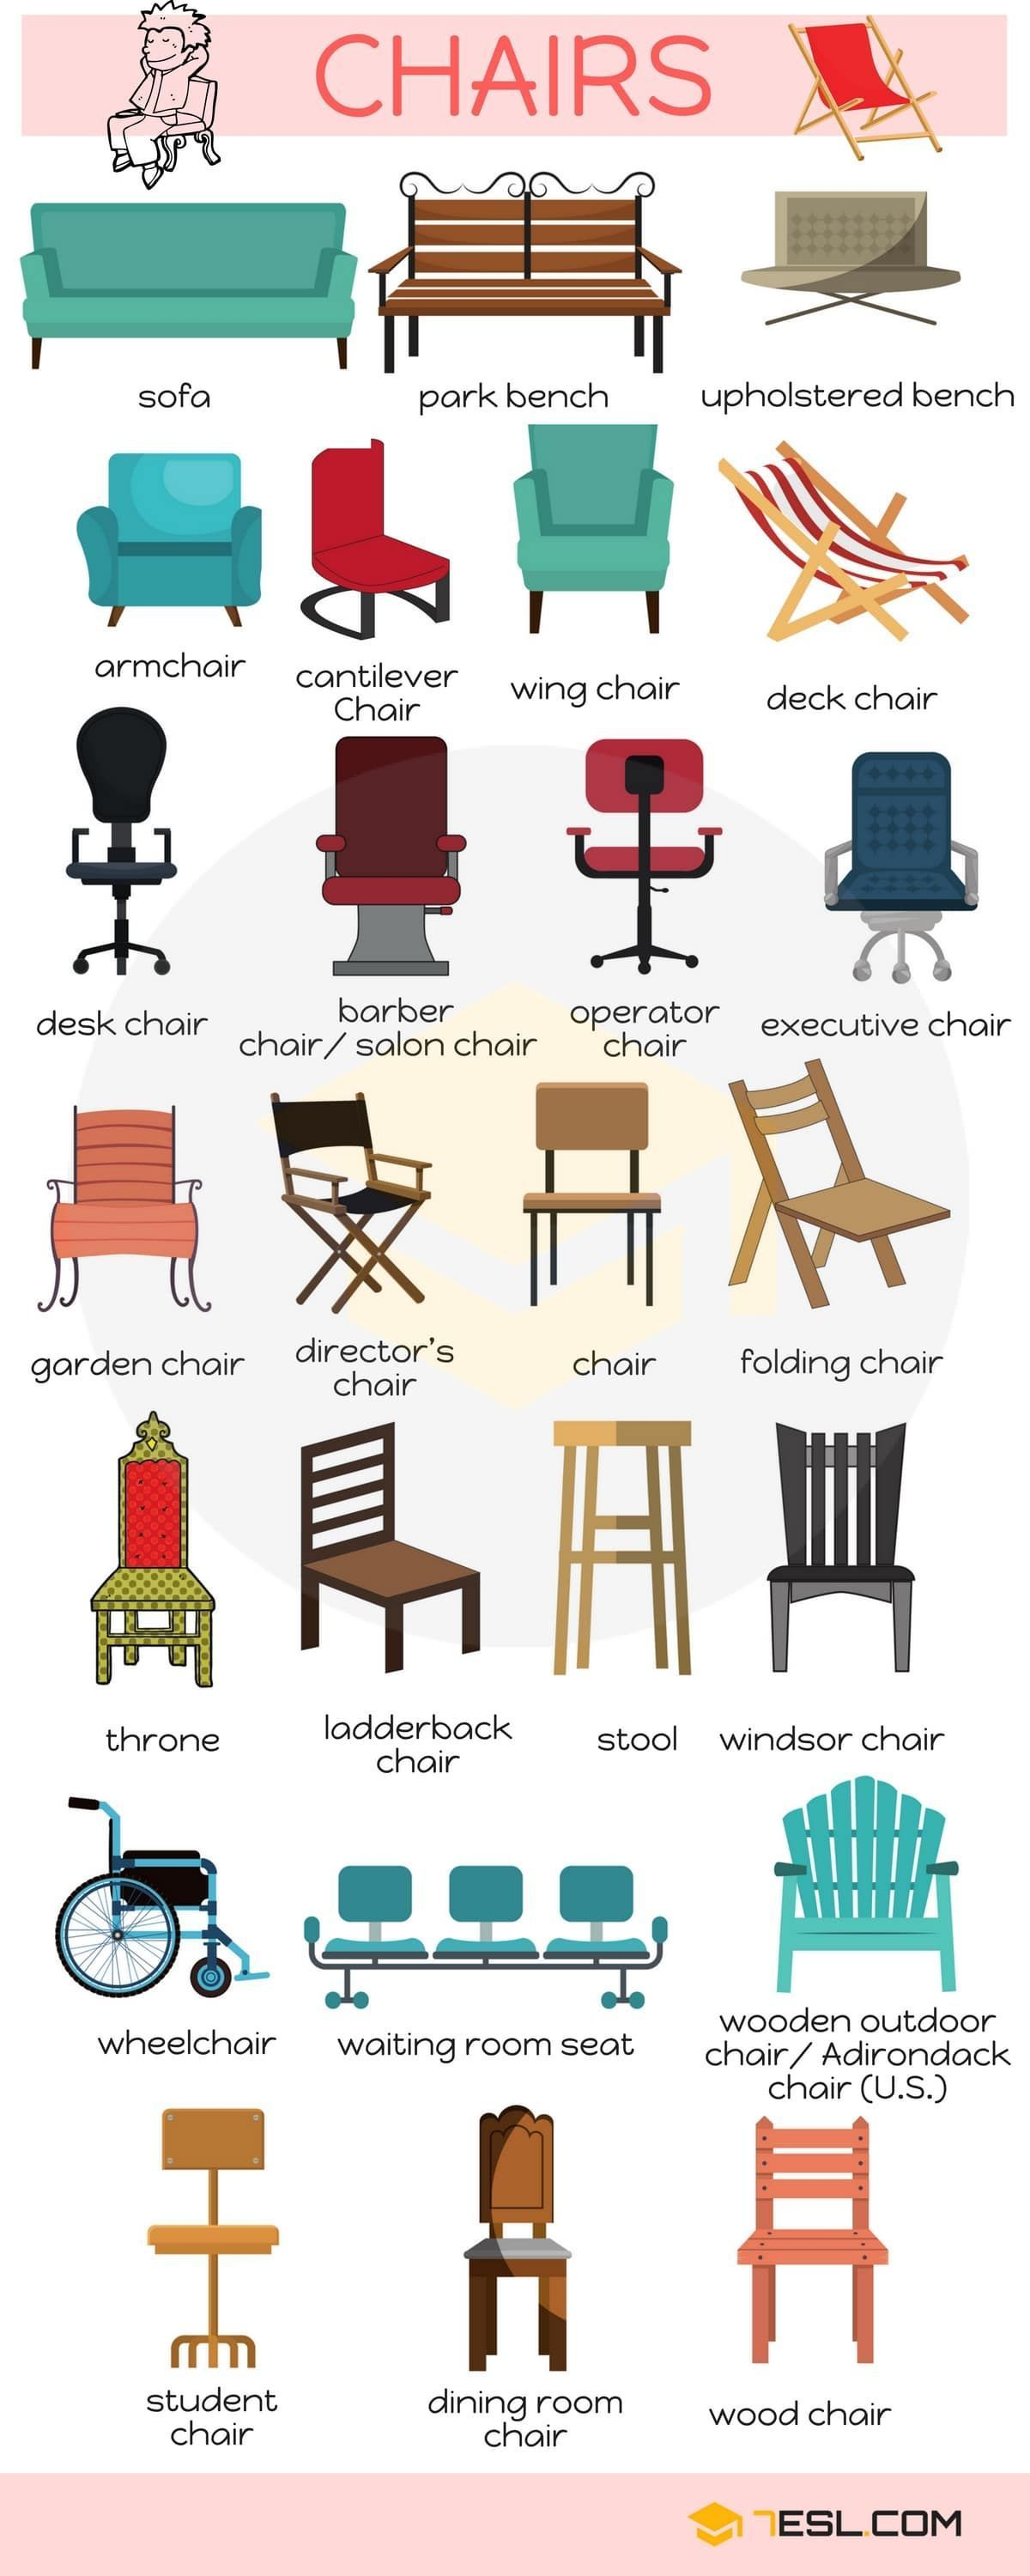 Furniture Vocabulary In English Chairs мова